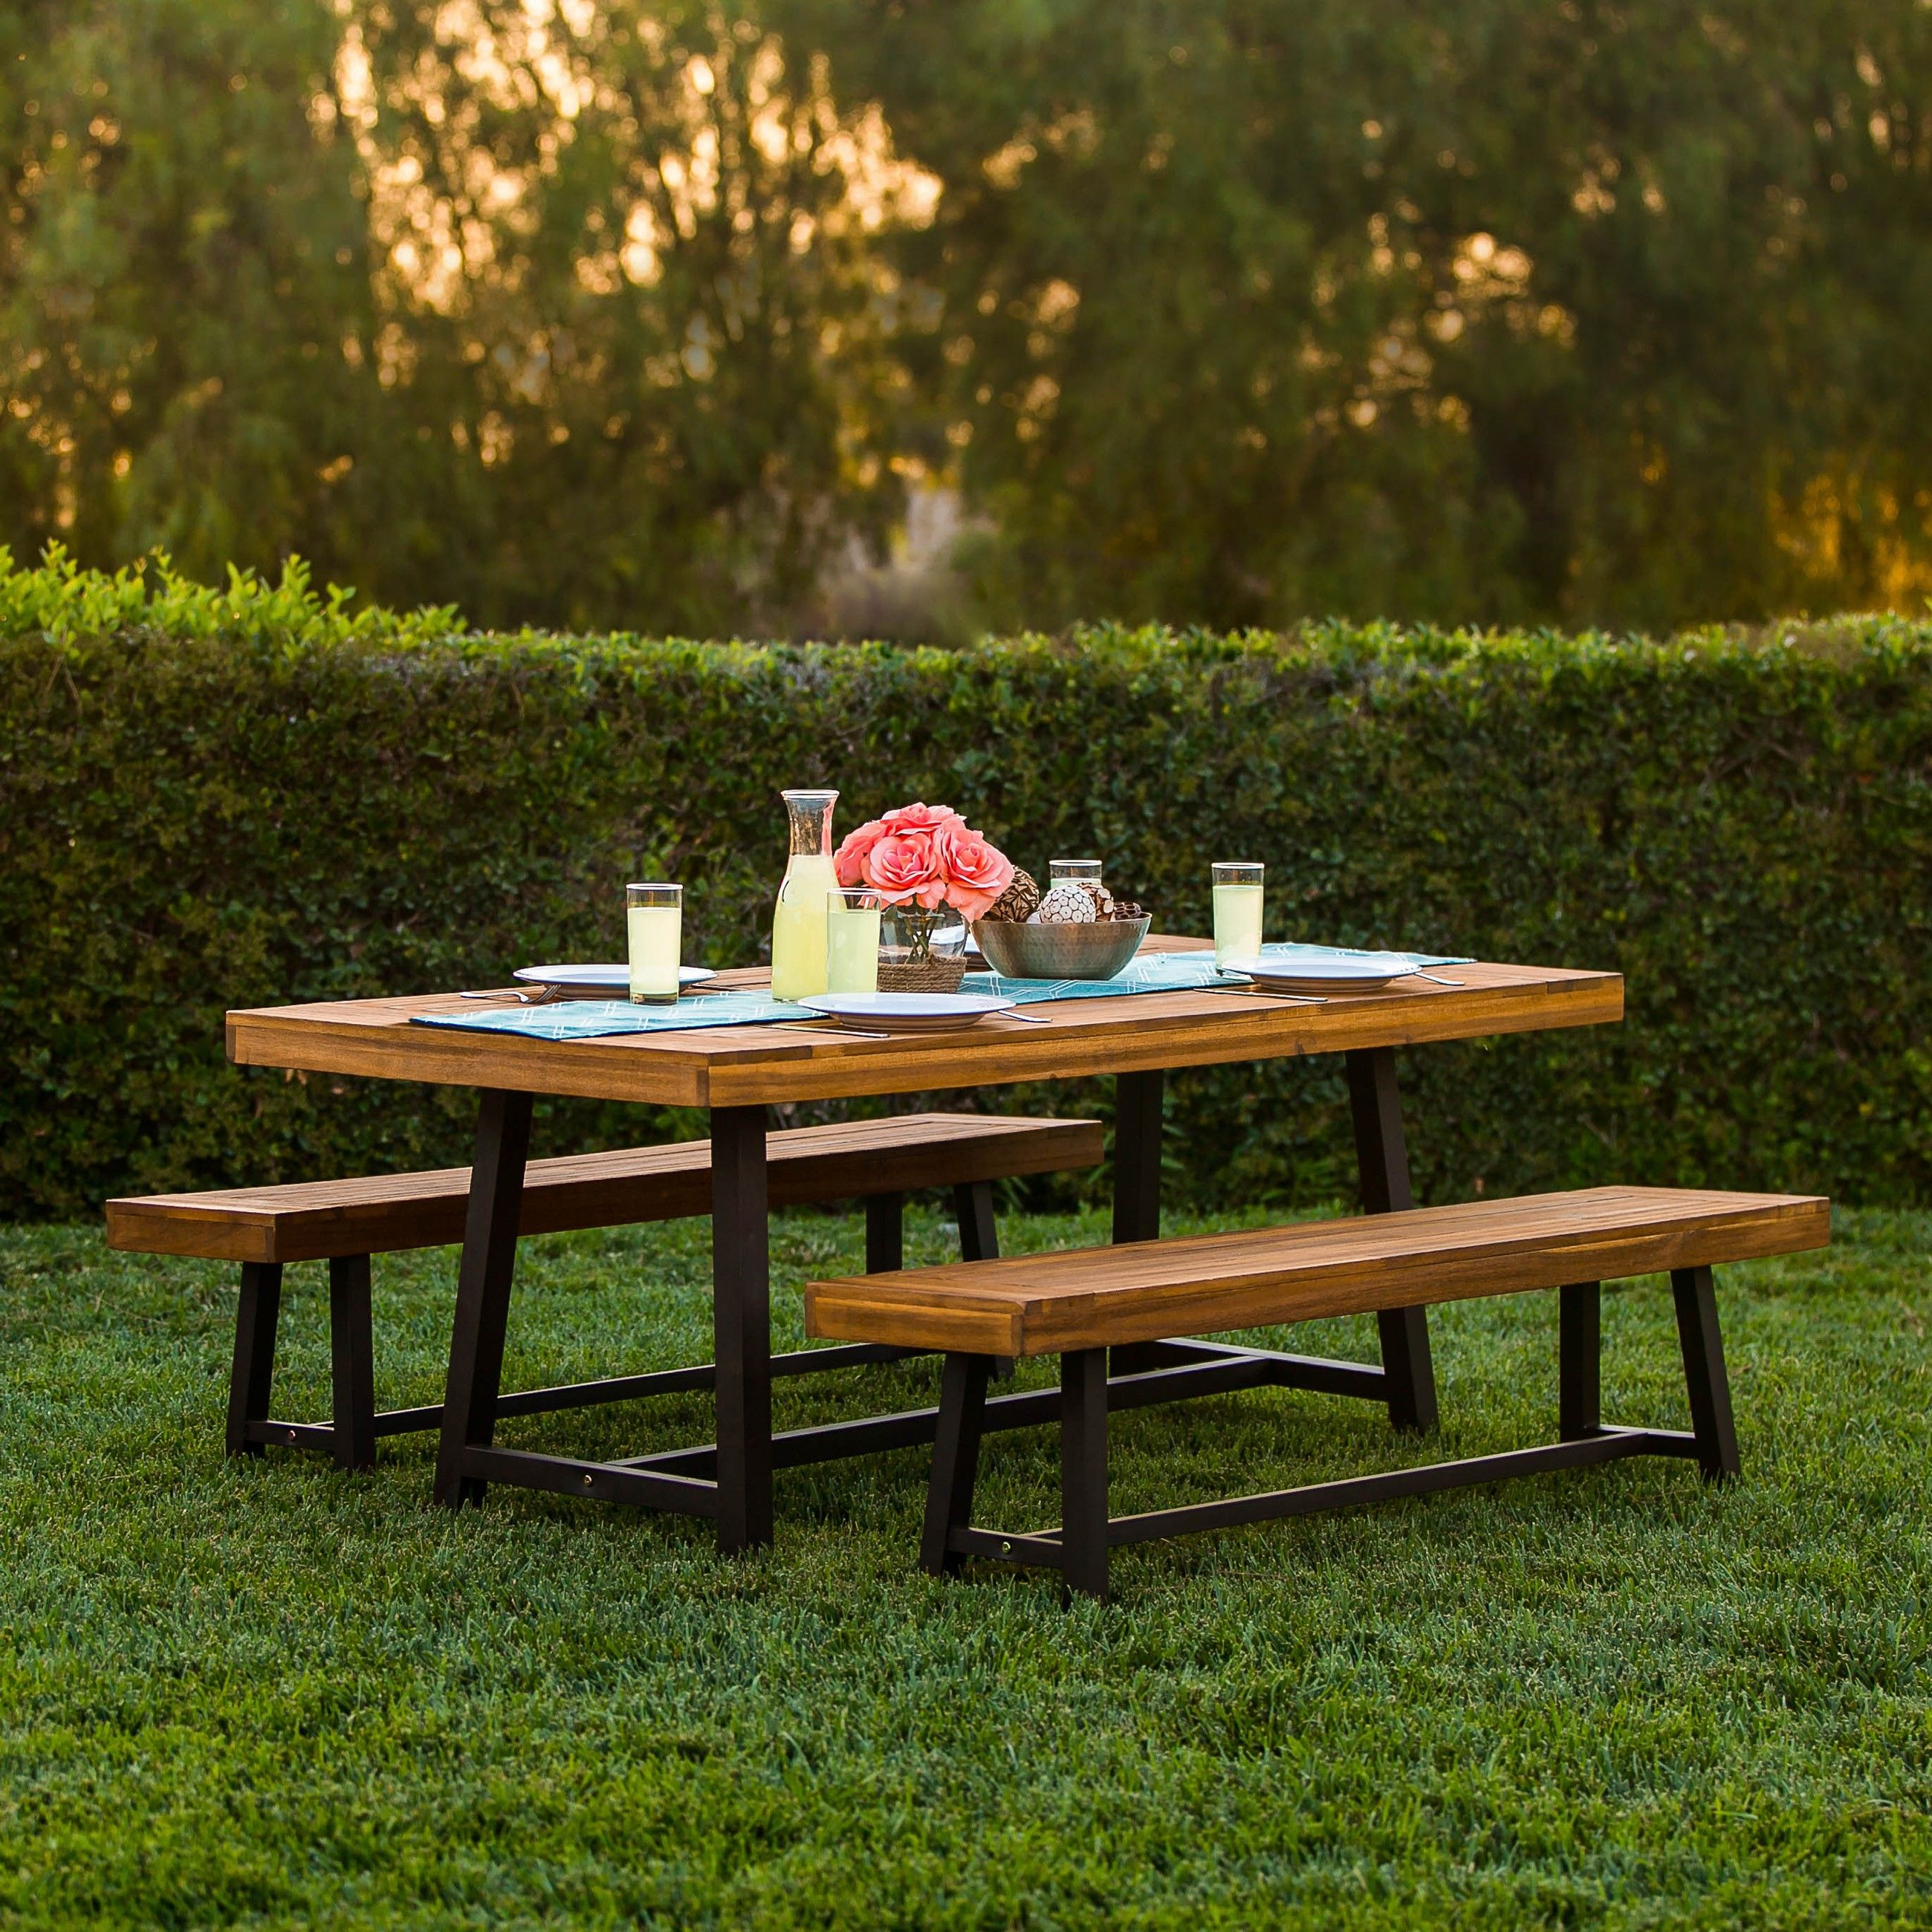 Best Choice Products 3 Piece Acacia Wood Picnic Style Outdoor